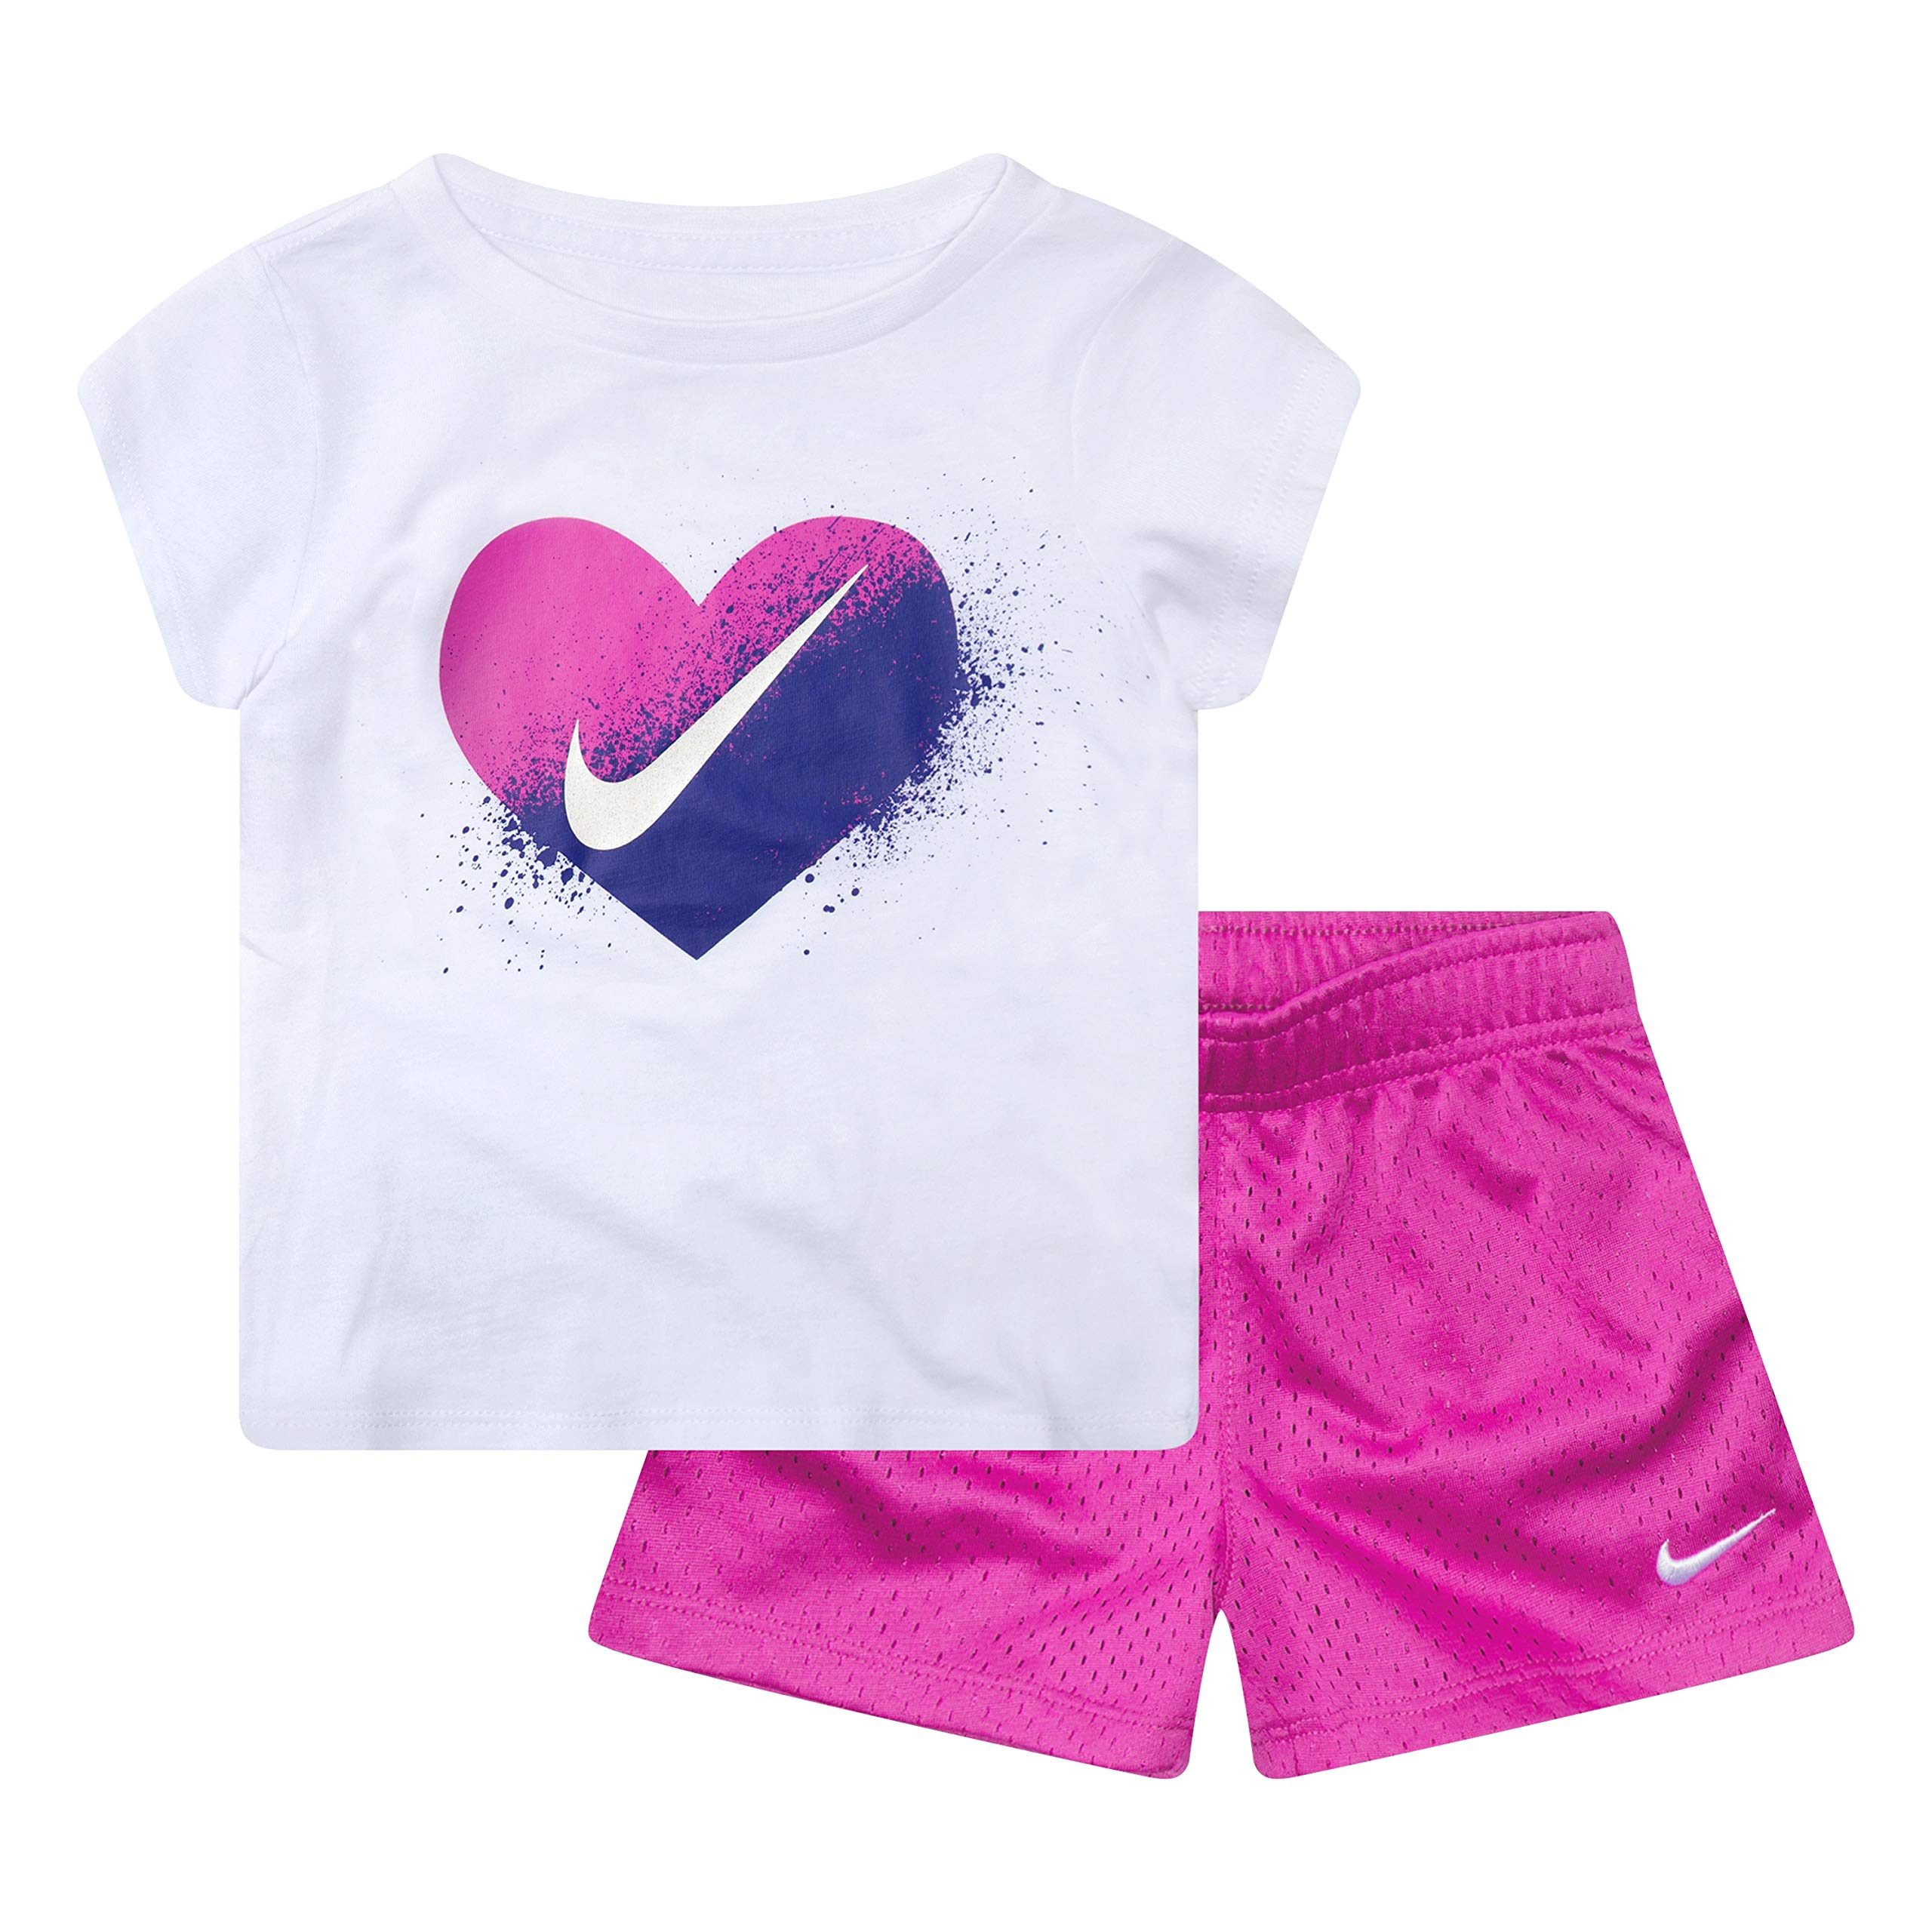 NIKE Children's Apparel Girls' Toddler Graphic T-Shirt and Shorts 2-Piece Outfit Set, Hyper Magenta/White, 3T